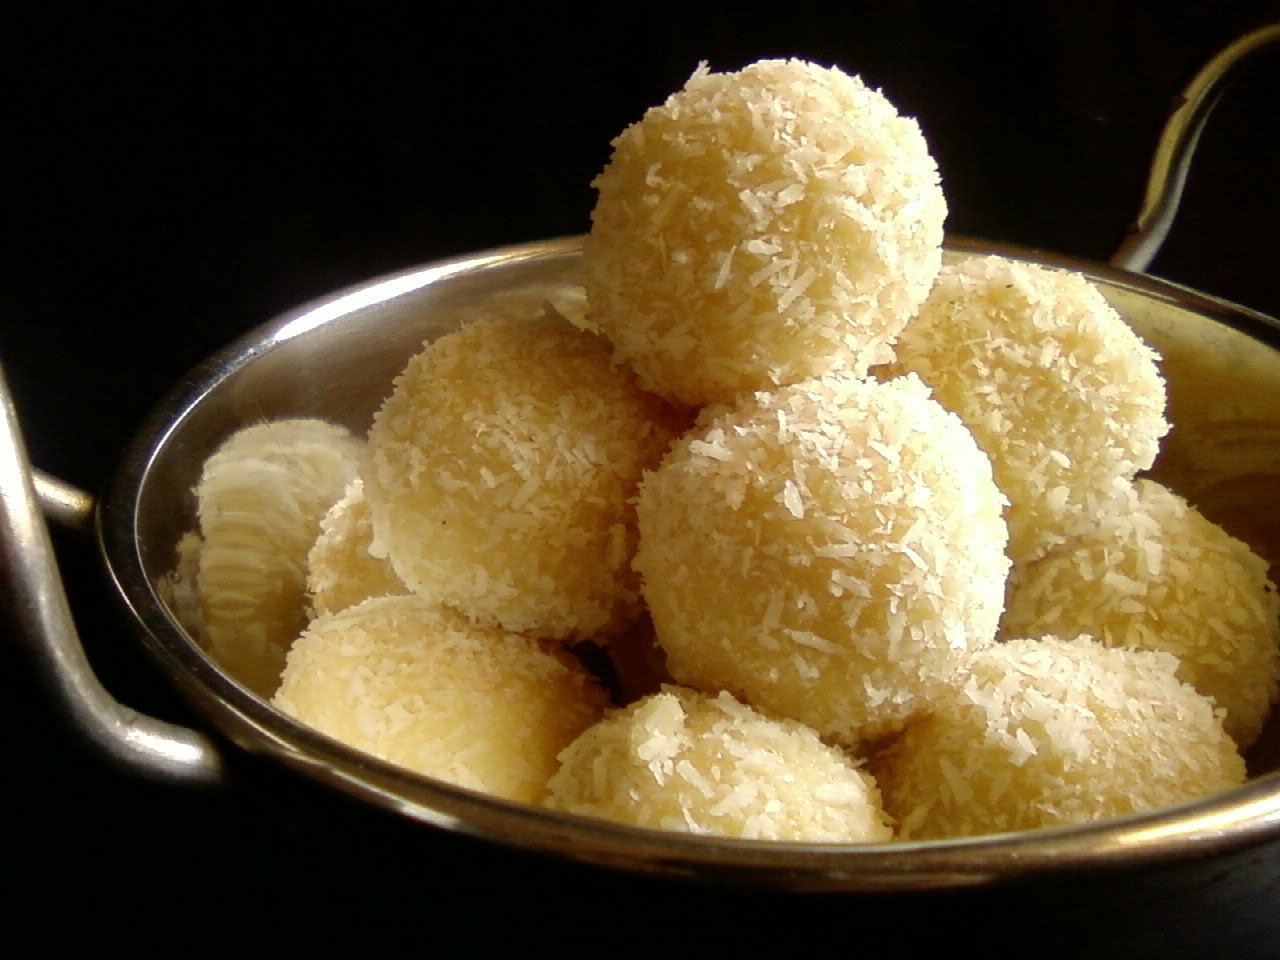 These bit-sized delicacies pack a sweet punch (mimpidreams.blogspot.com)